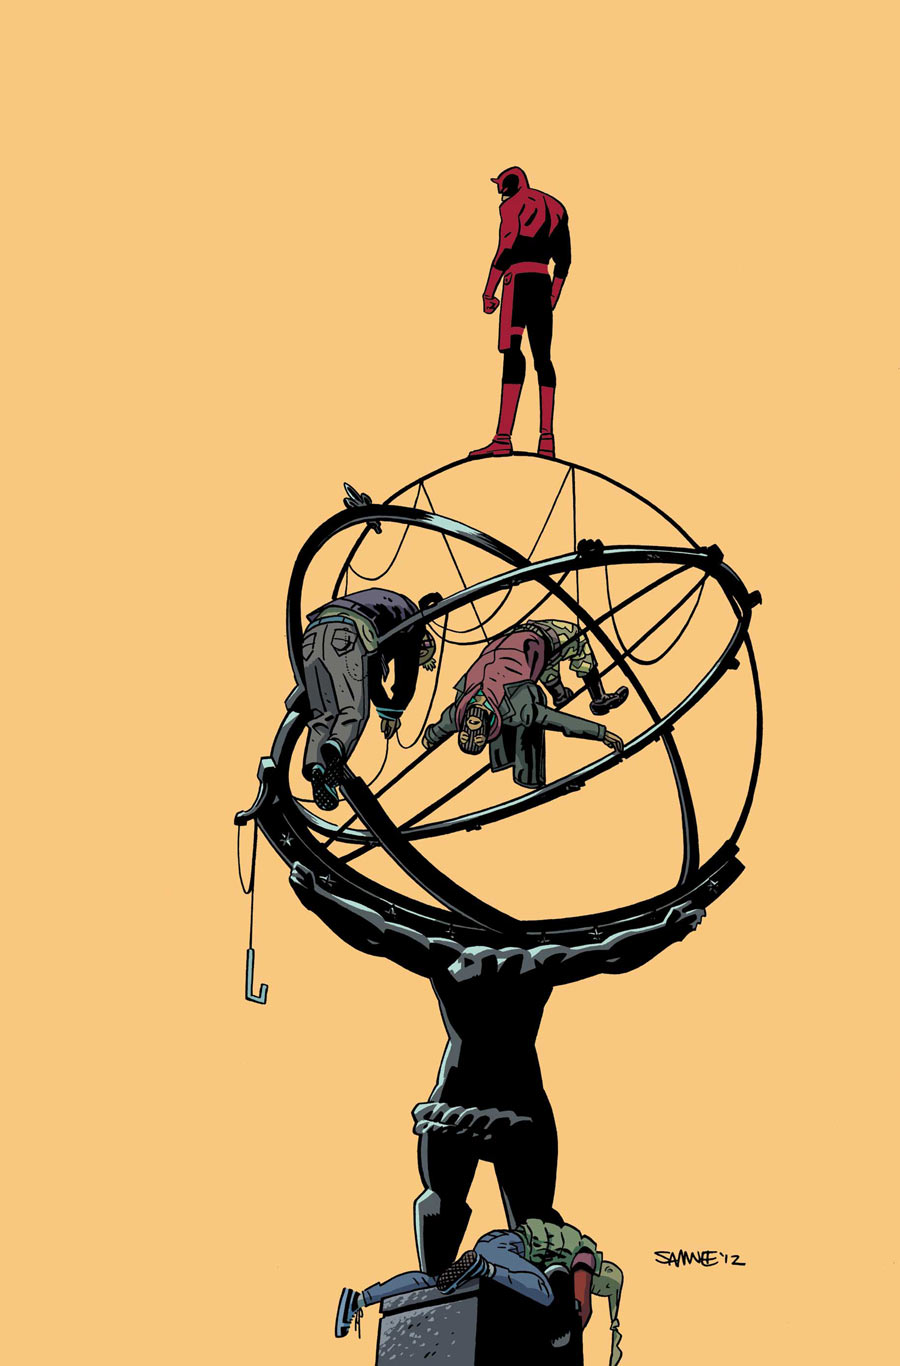 Daredevil #24 cover, by Chris Samnee and Javíer Rodríguez